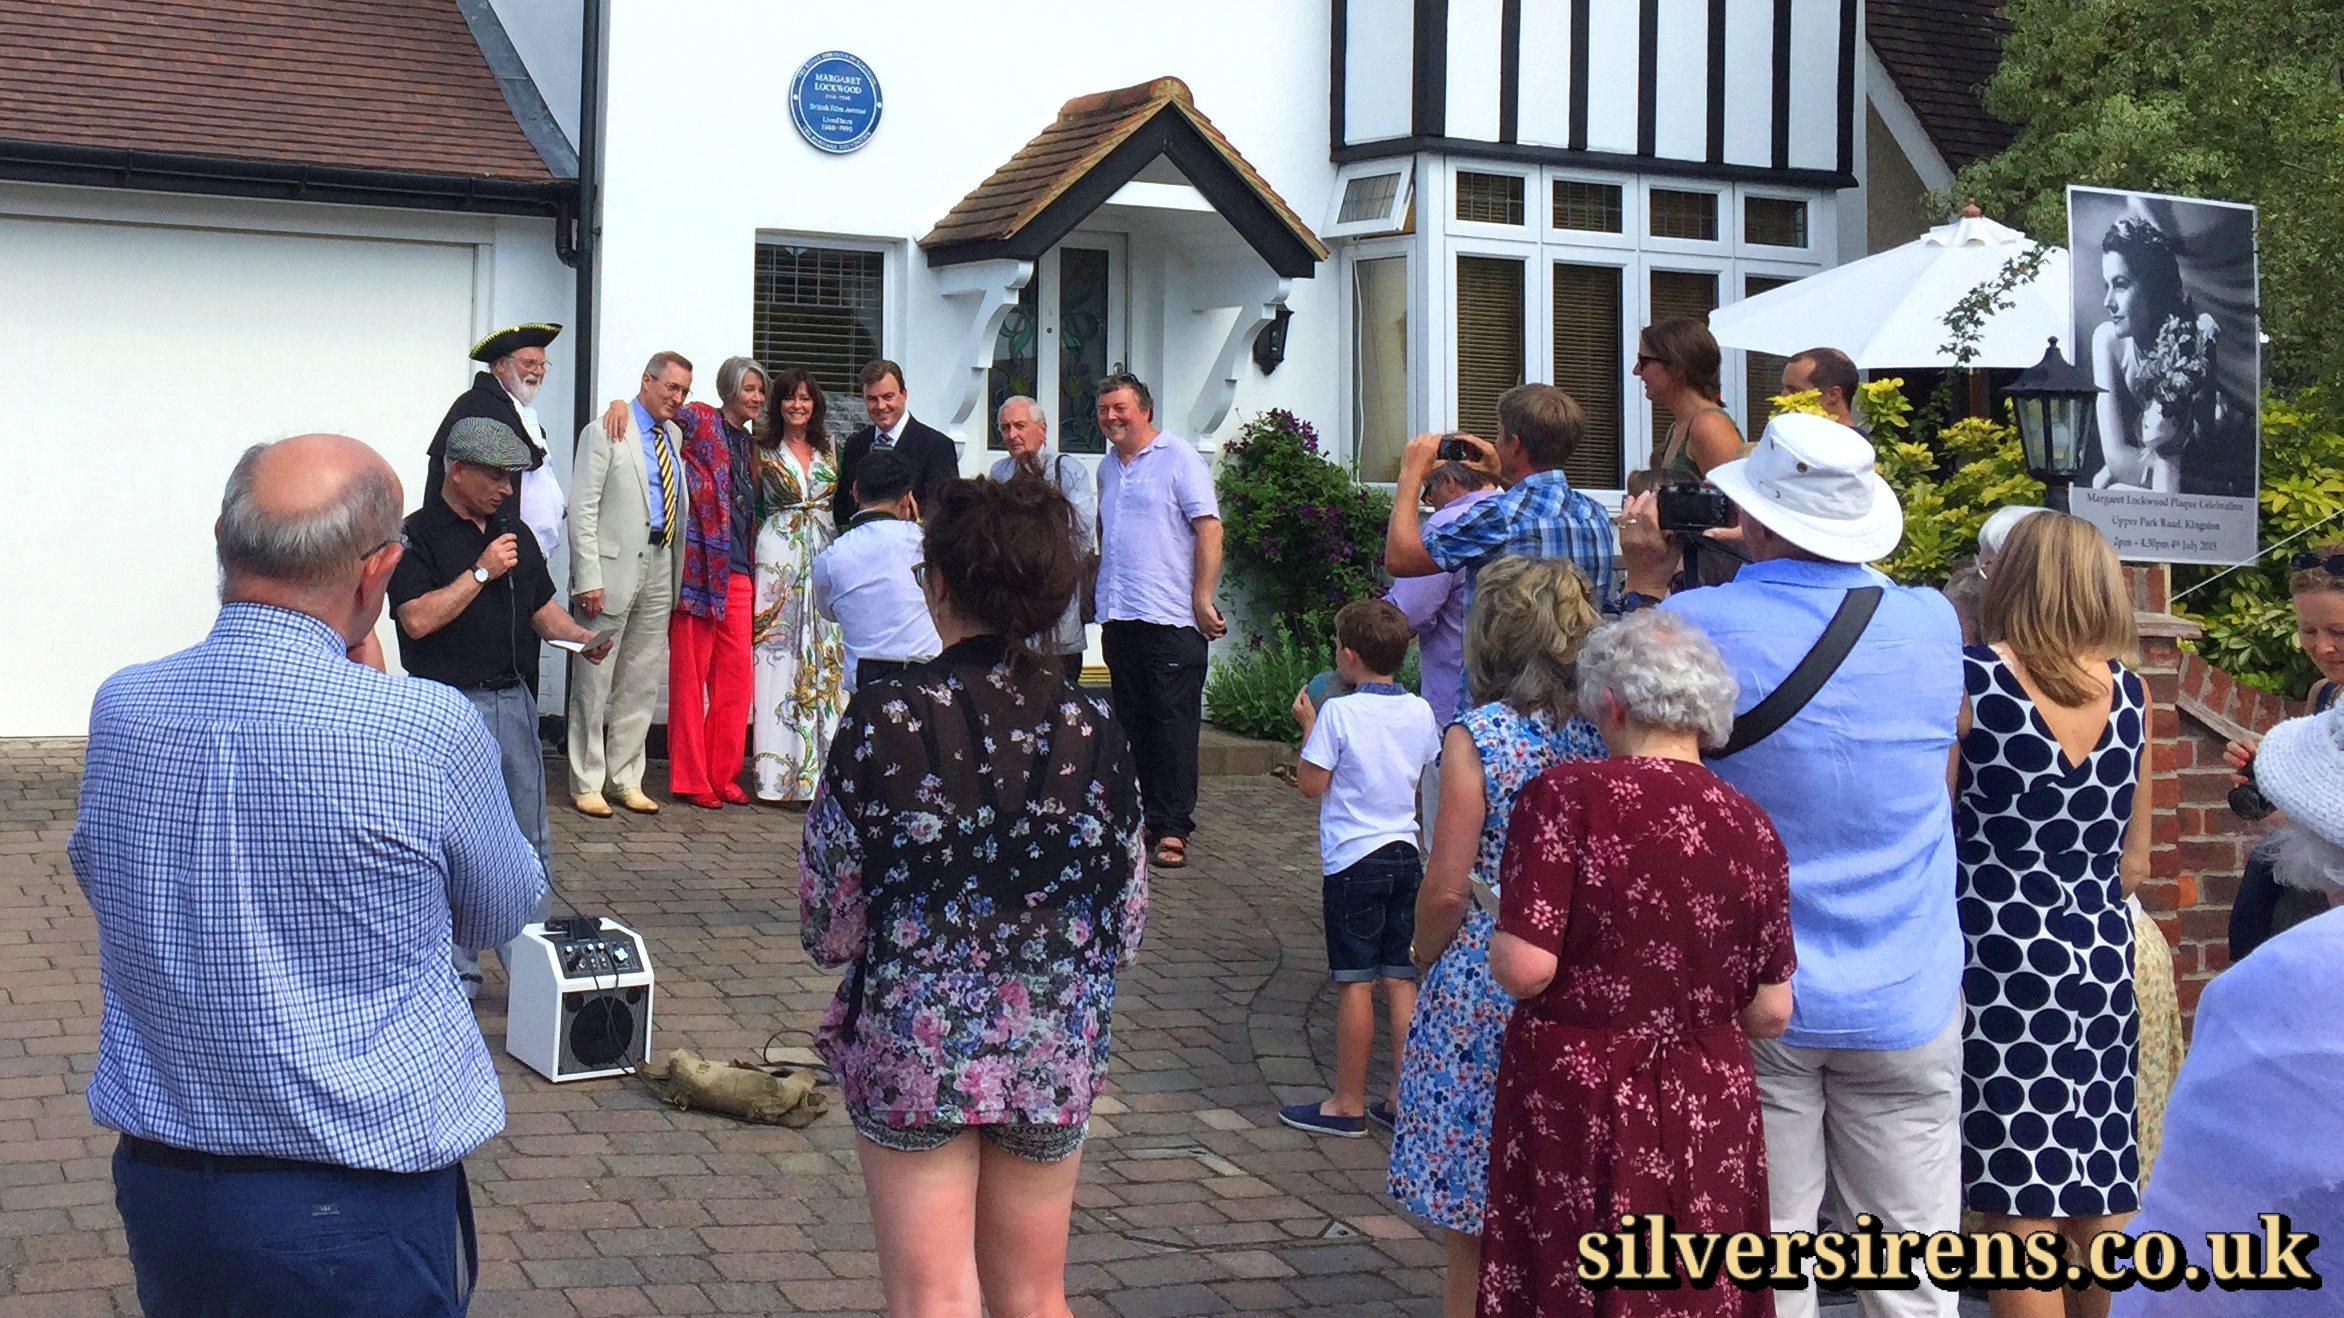 Press photo call following the unveiling of a commemorative blue plaque for British actress Margaret Lockwood at 34, Upper Park Road, Kingston upon Thames, Surrey.  Photo shows (L-R): Councillor David Cunningham, Dennis Gimes, Julia Lockwood, Vicki Michelle, Richard Williams, Hilton Tims, Tim Harrison